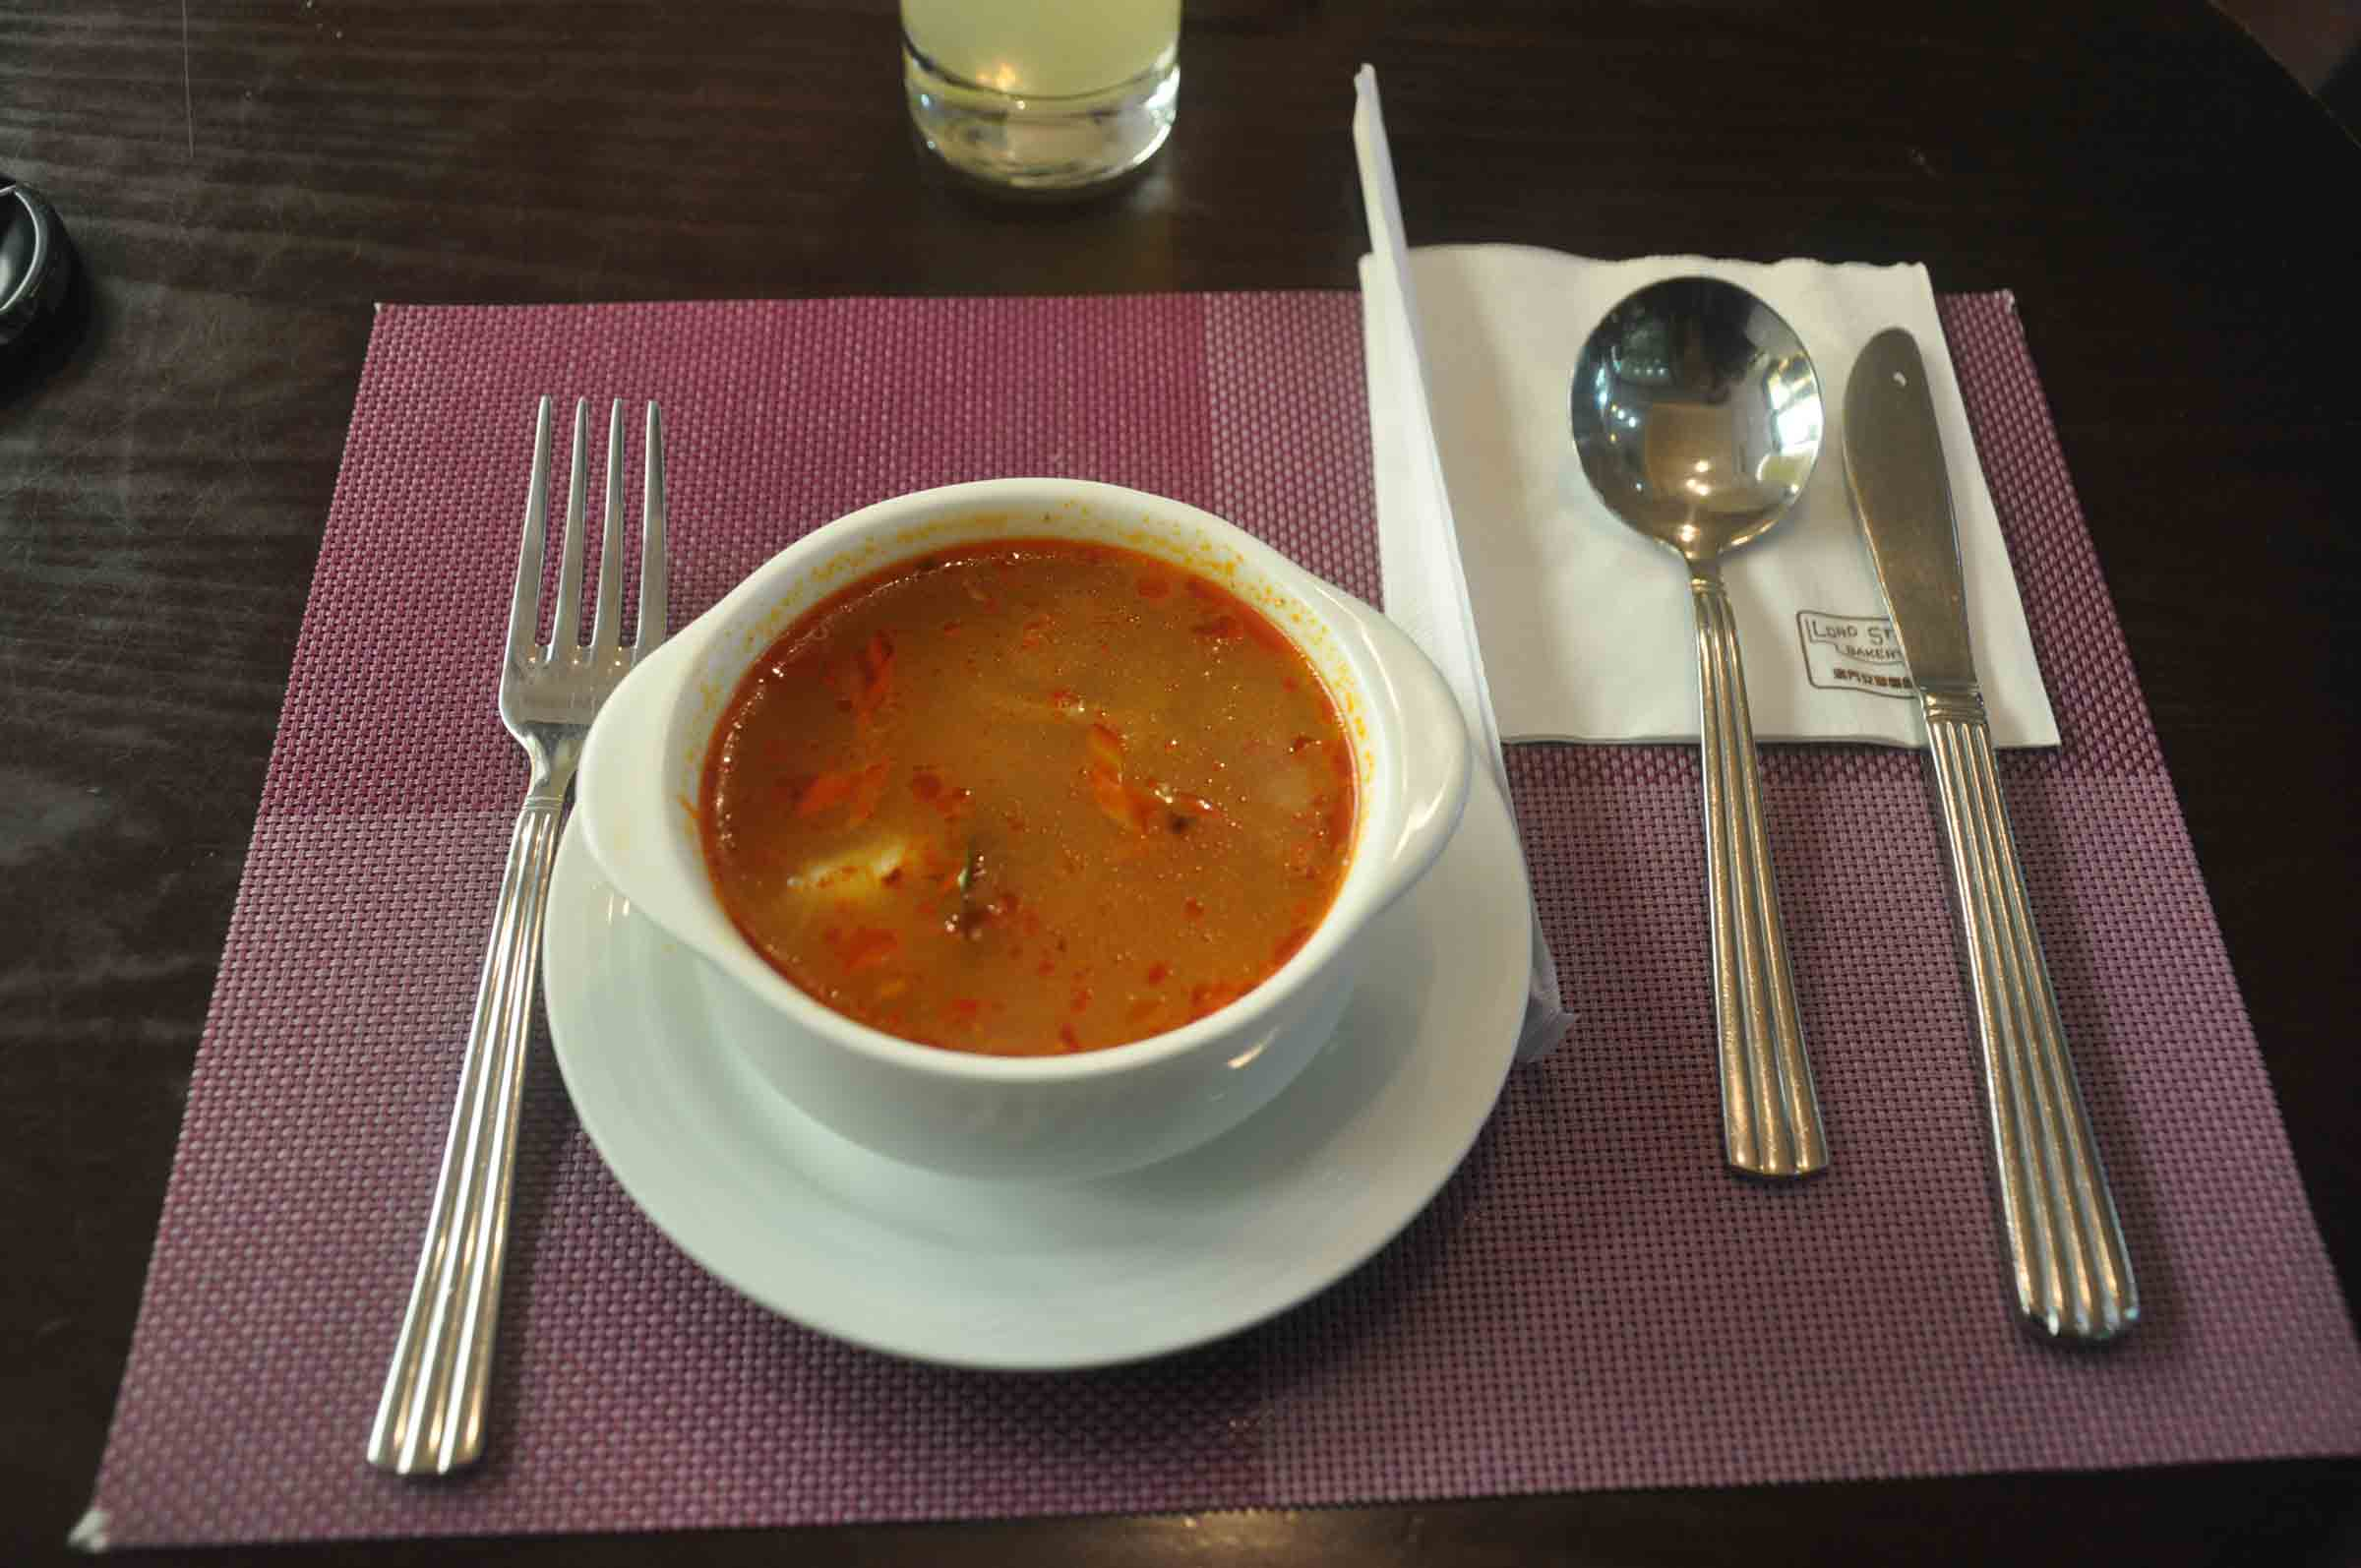 Lord Stows Garden Cafe tom yum kung soup